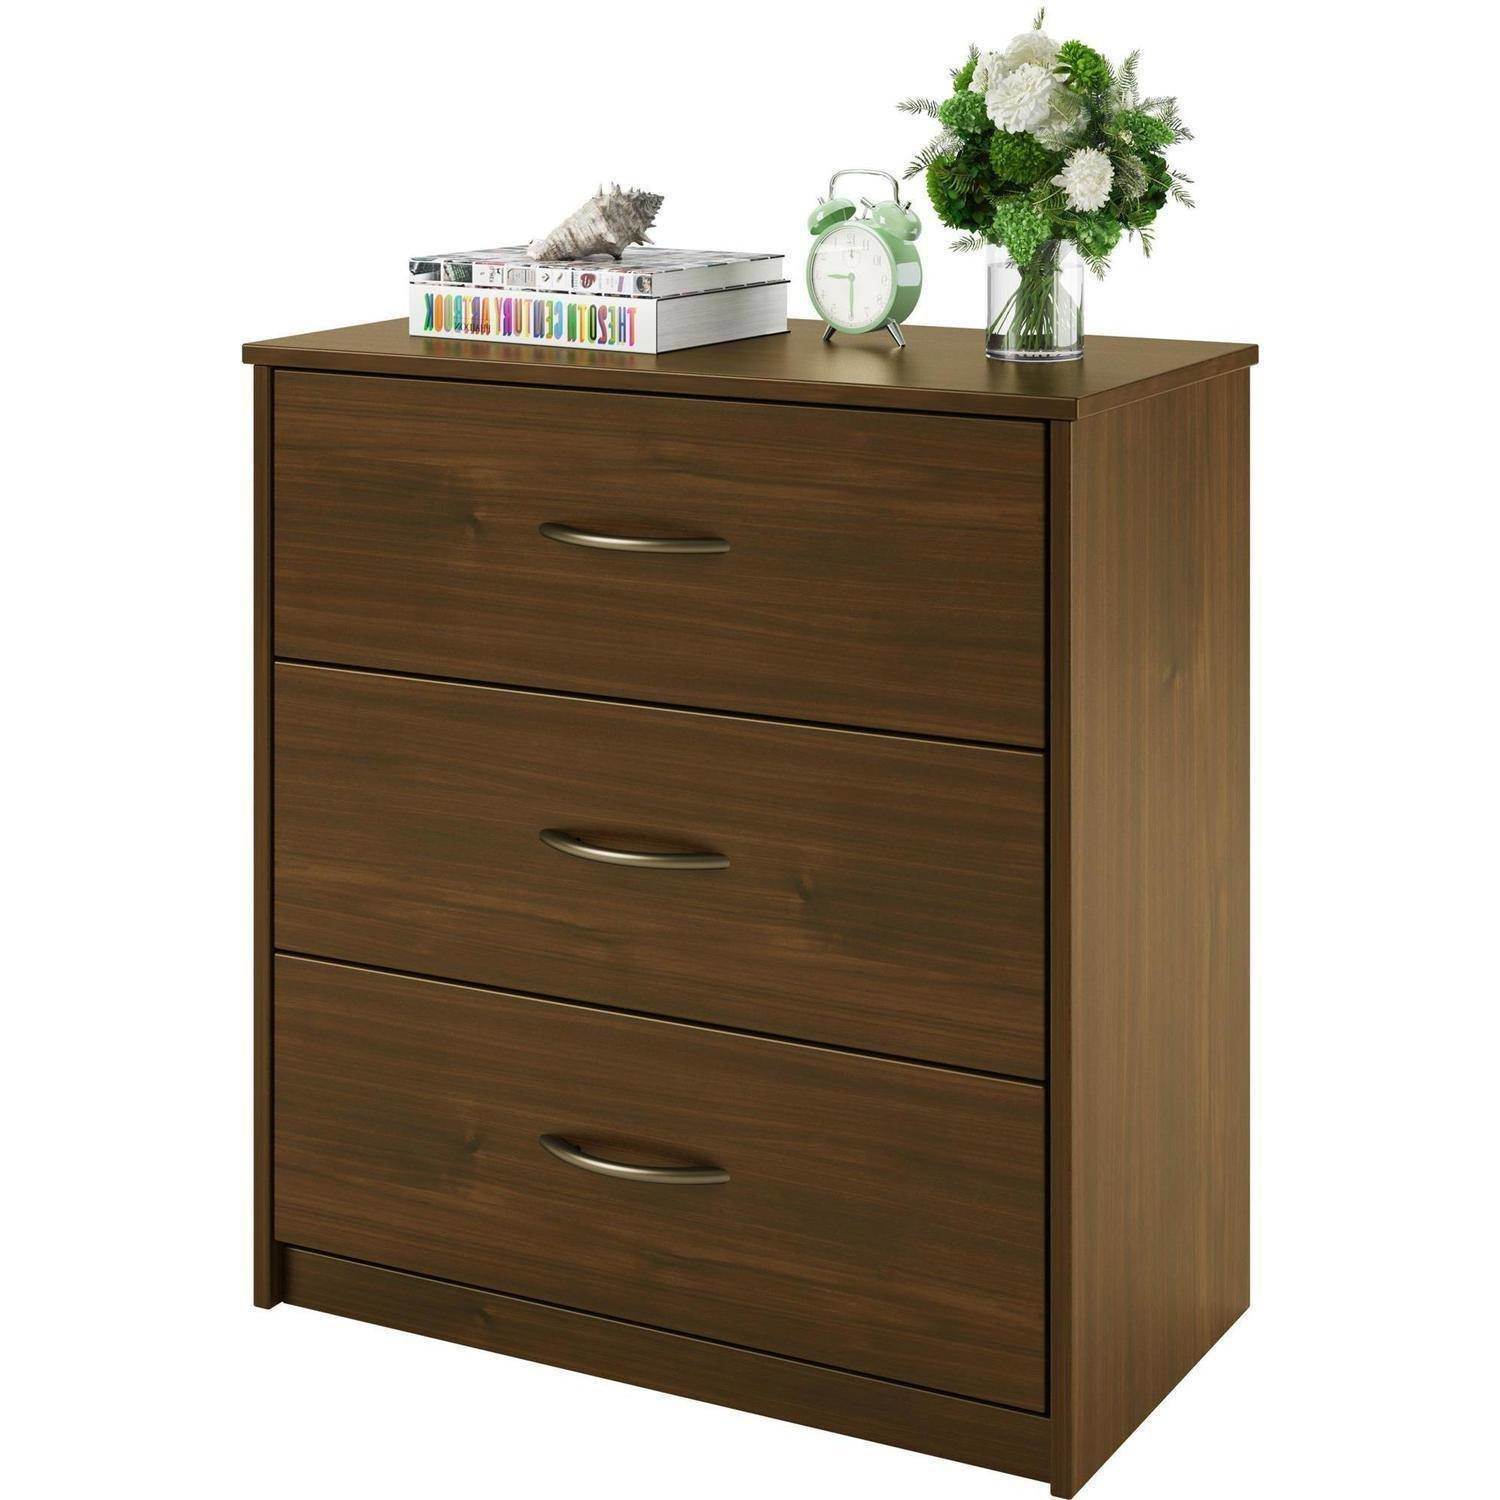 Best 3 Drawer Dresser Chest Bedroom Furniture Black Brown White With Pictures